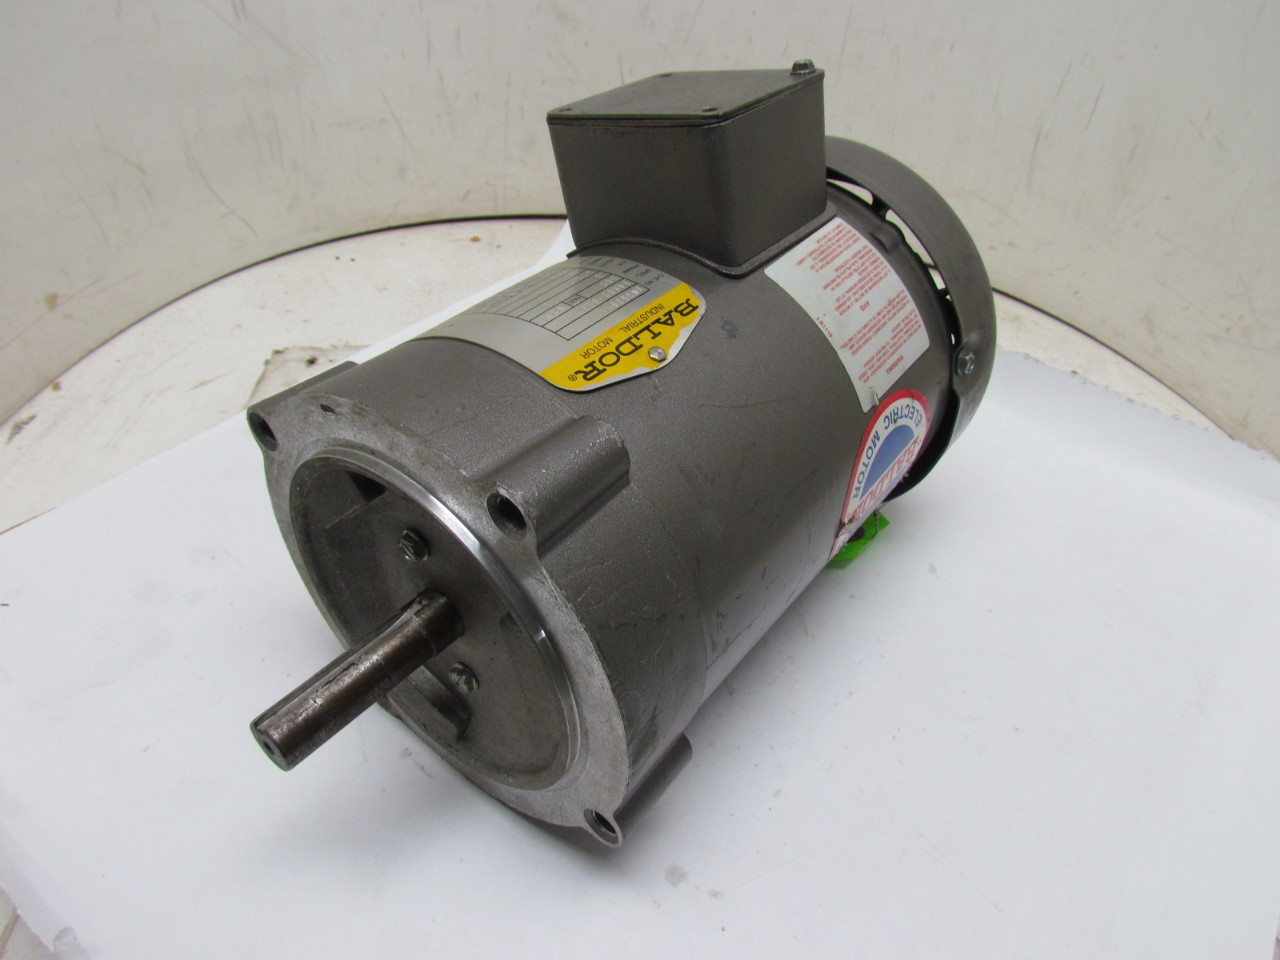 Baldor vm3538 5 34a63 873 3 phase electric motor 1 2hp for 3 phase 3hp motor